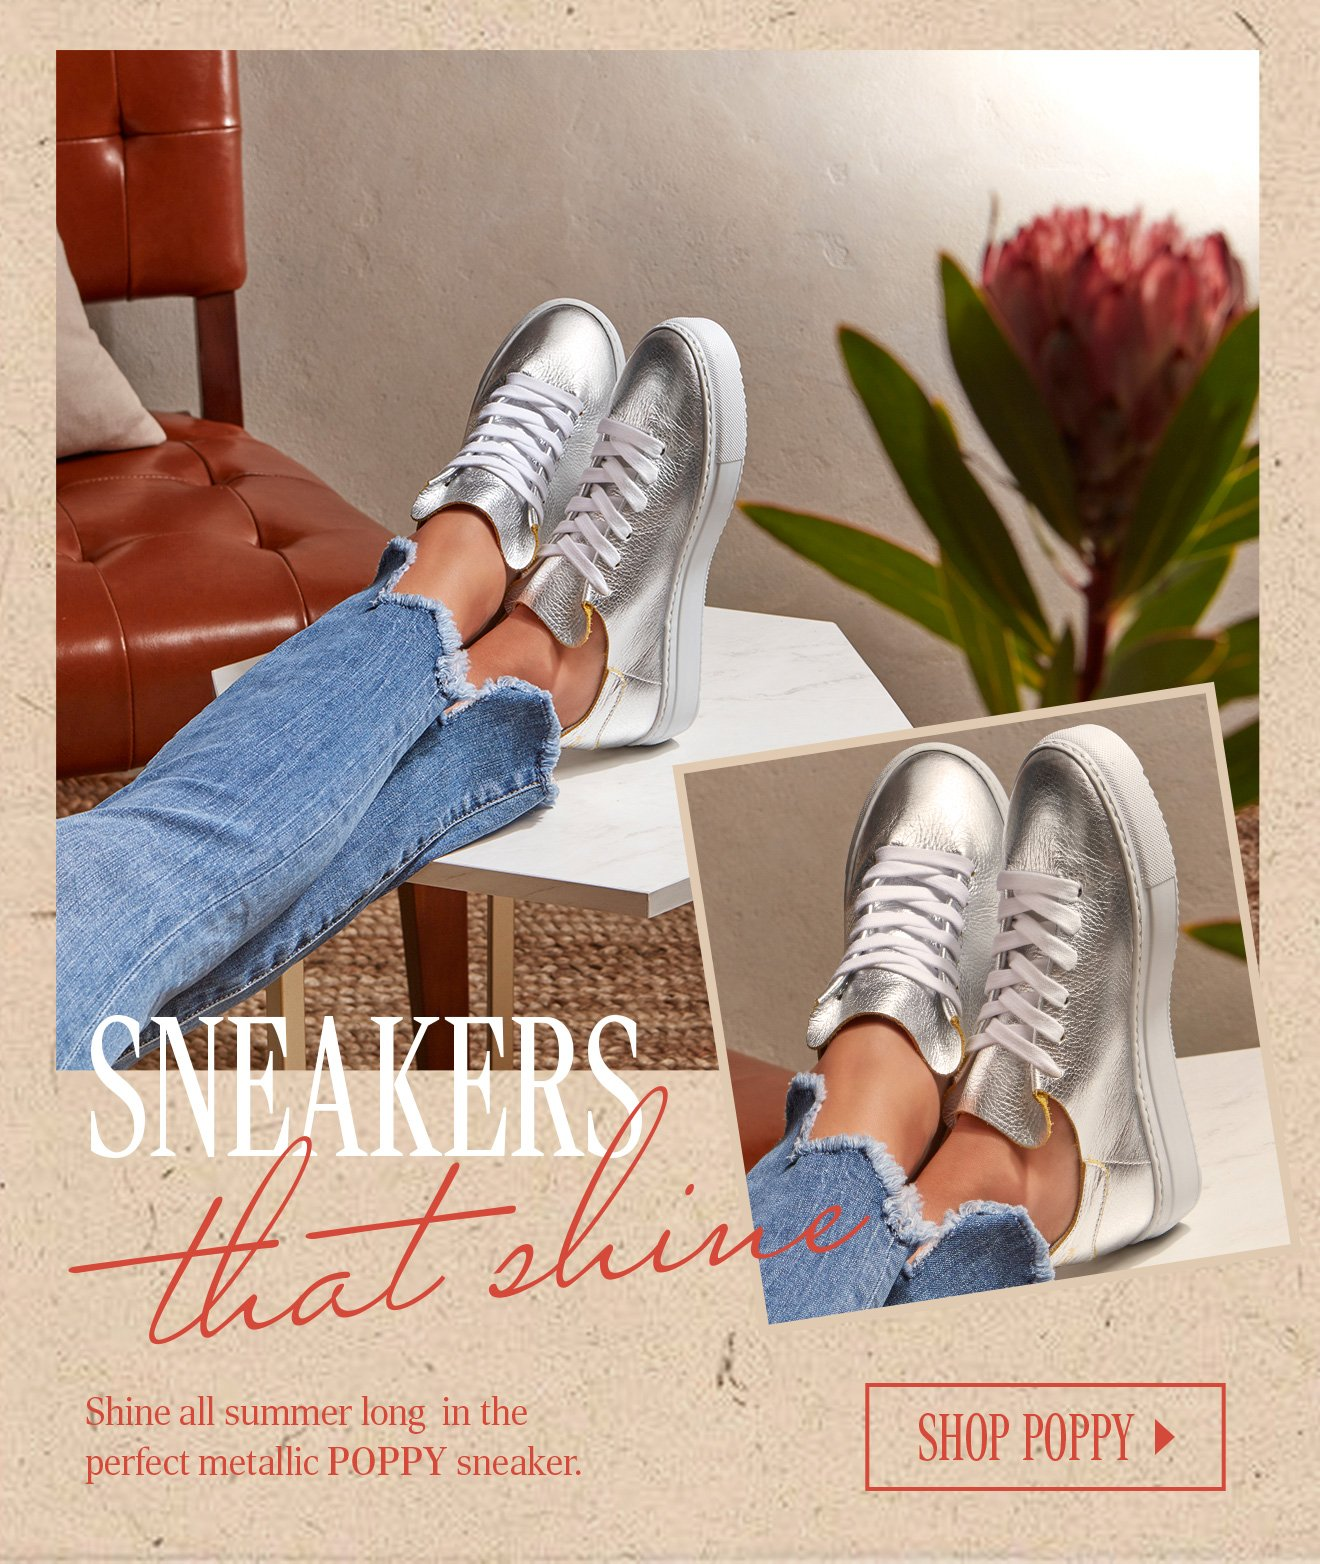 SNEAKERS THAT SHINE. Shine all summer long  in the perfect metallic POPPY sneaker.SHOP POPPY.